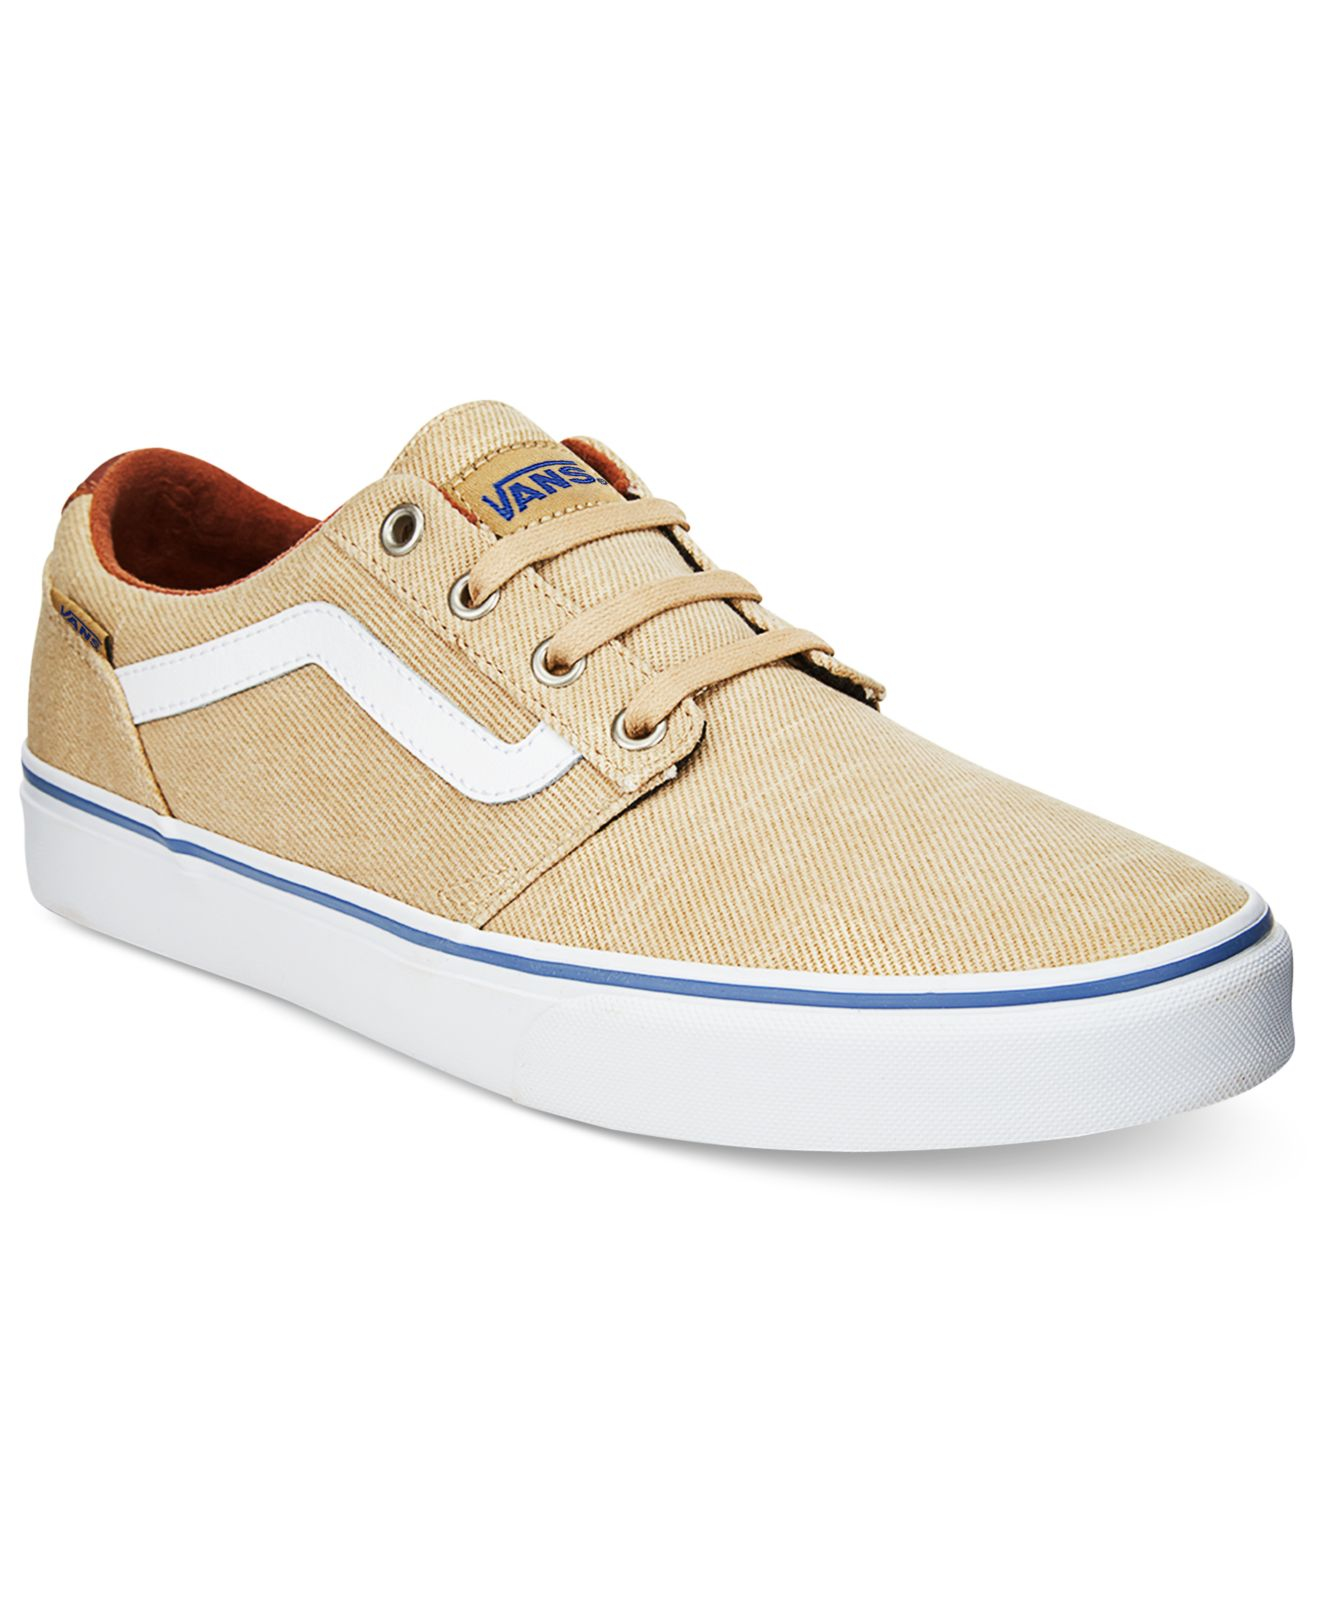 vans men 39 s chapman stripe low top sneakers in natural for men khaki save 10 lyst. Black Bedroom Furniture Sets. Home Design Ideas